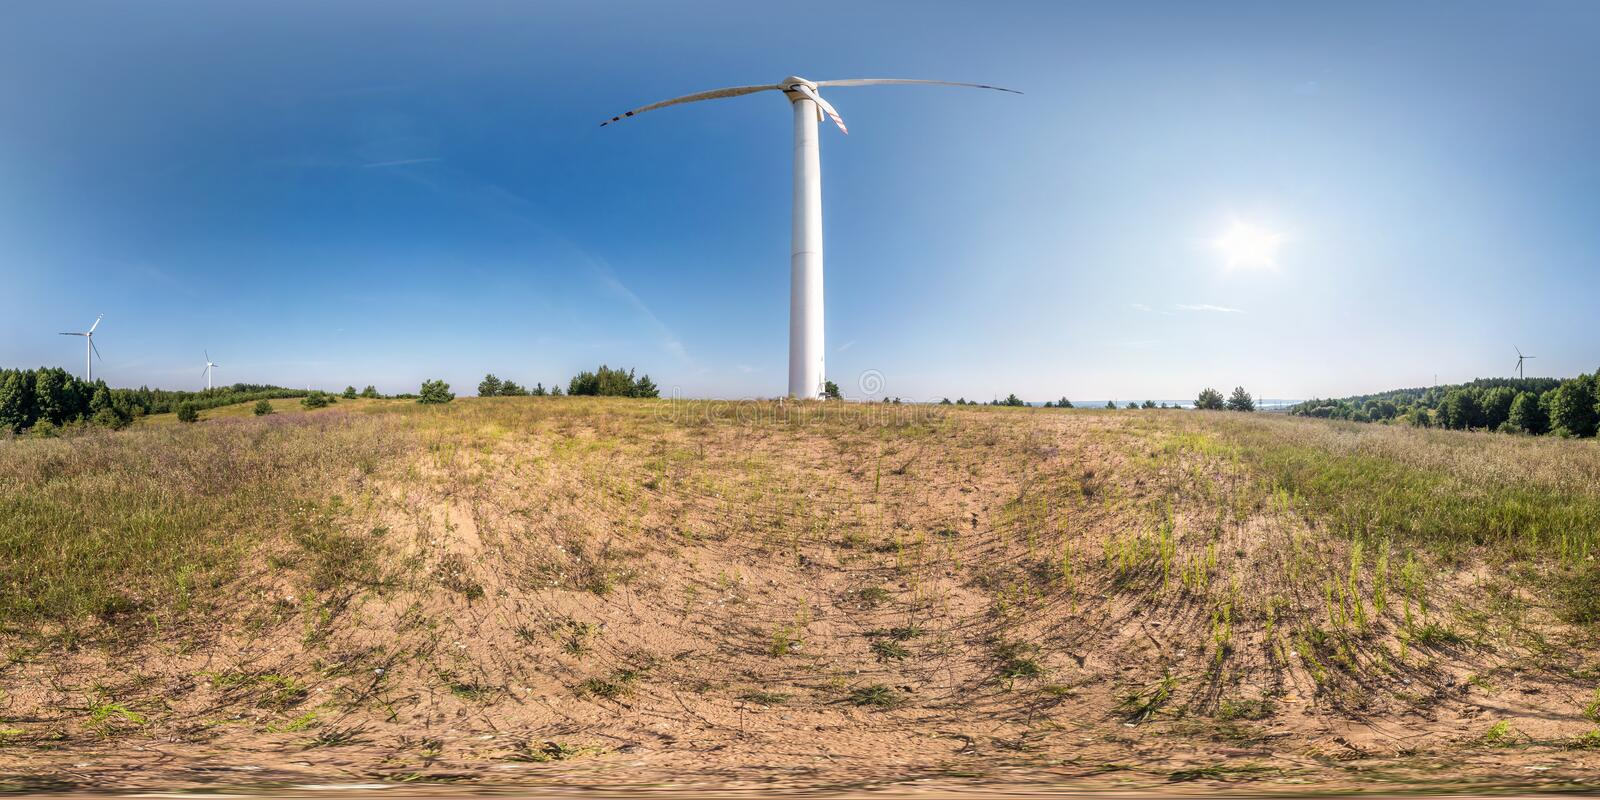 Full seamless spherical hdri panorama 360 degrees angle view near huge windmill propeller in equirectangular projection, VR AR. Virtual reality content. Wind royalty free stock image